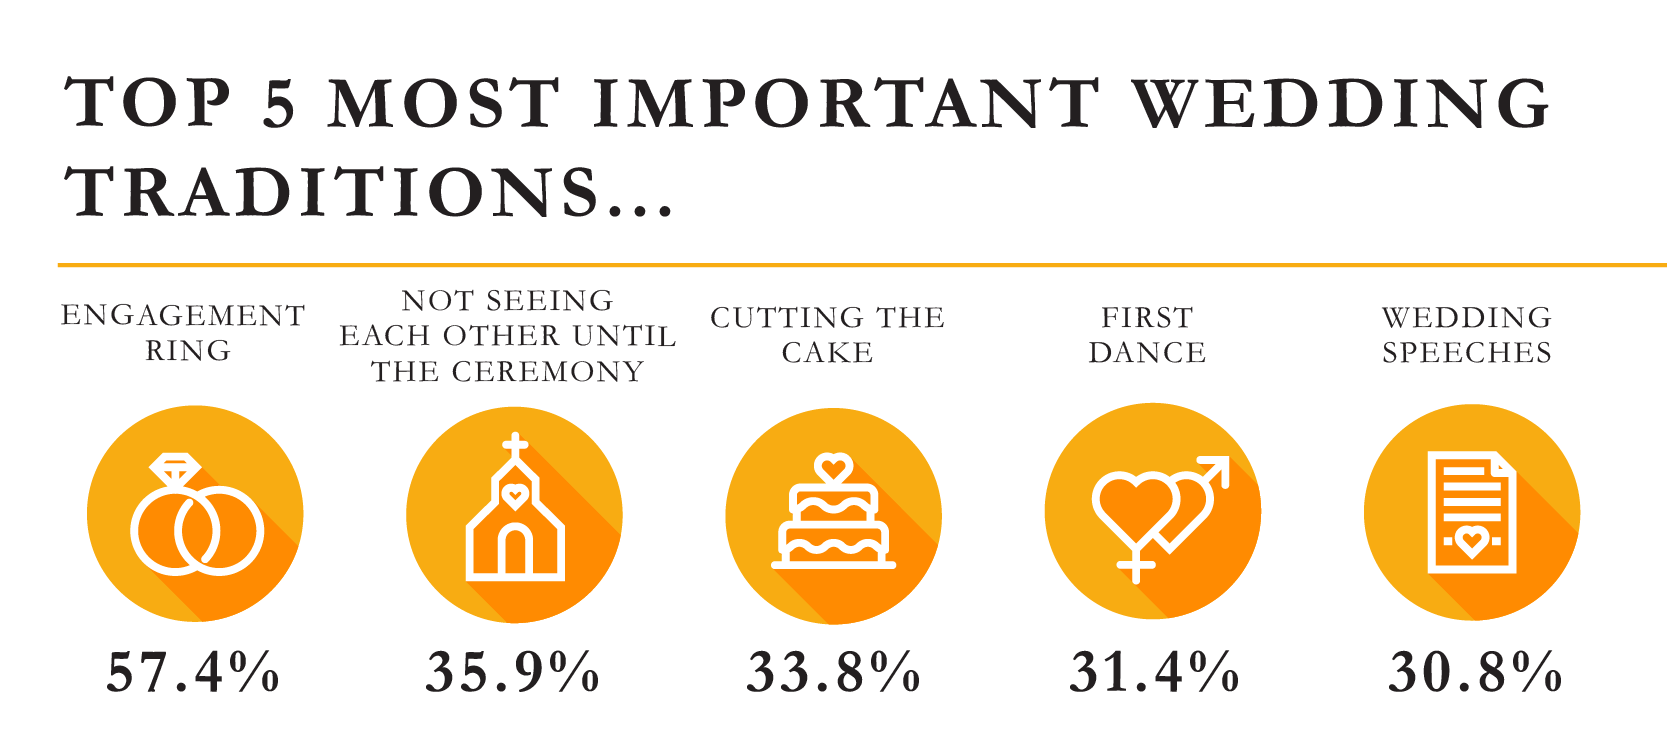 Whats important on your wedding day?